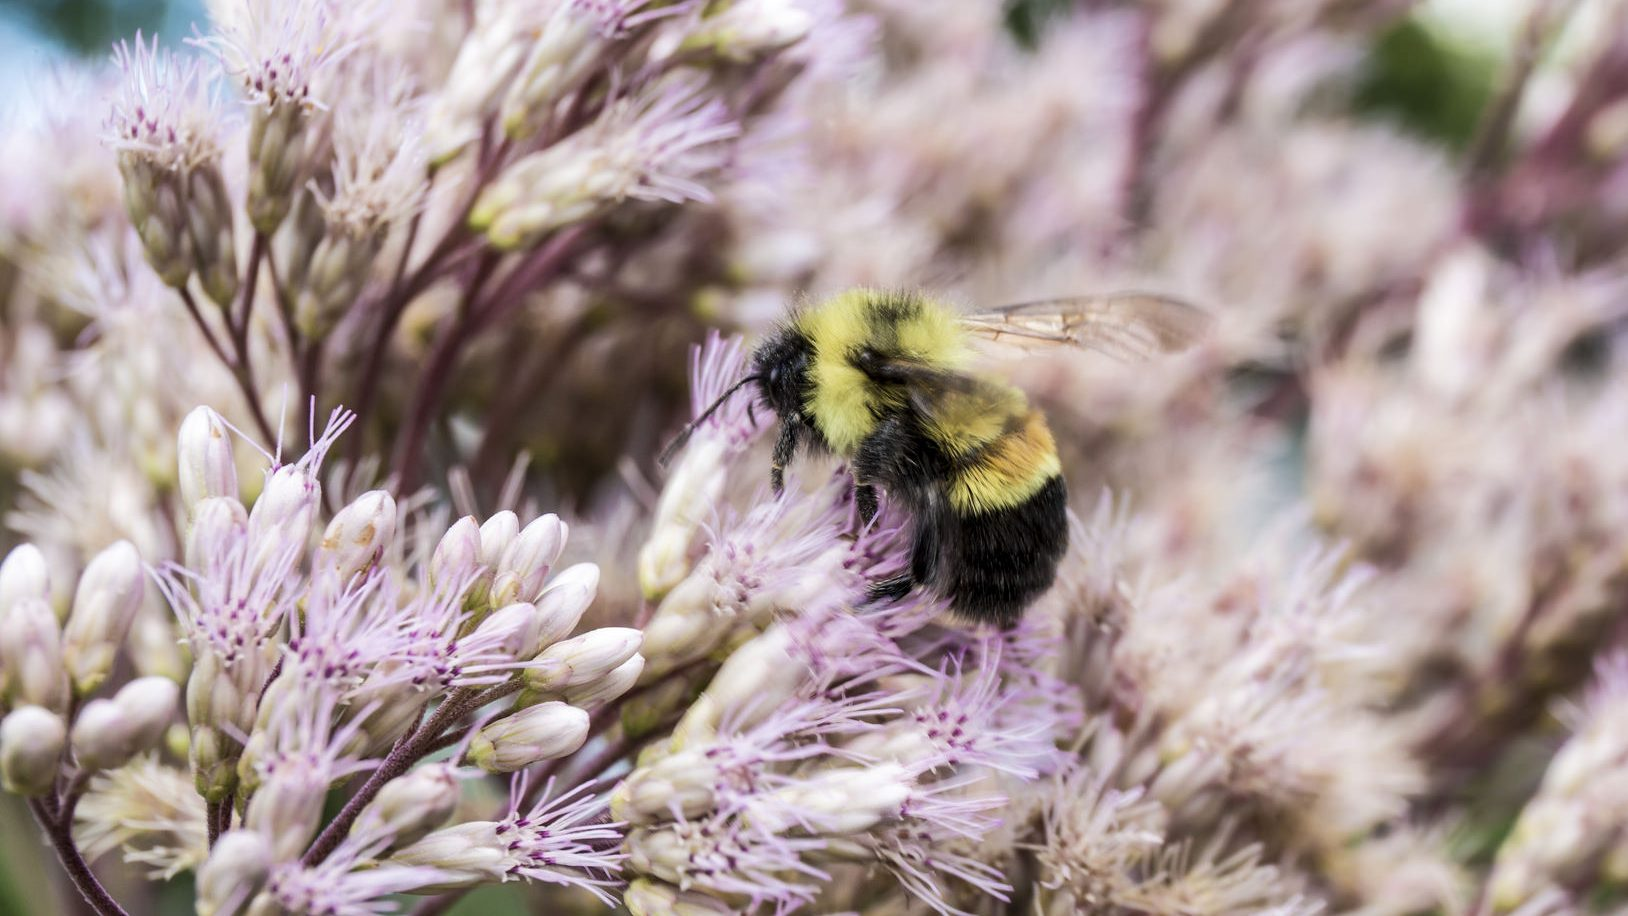 The Rusty Patched Bumble Bee (Bombus affinis), which was just put on the U. S. Endangered Species list.